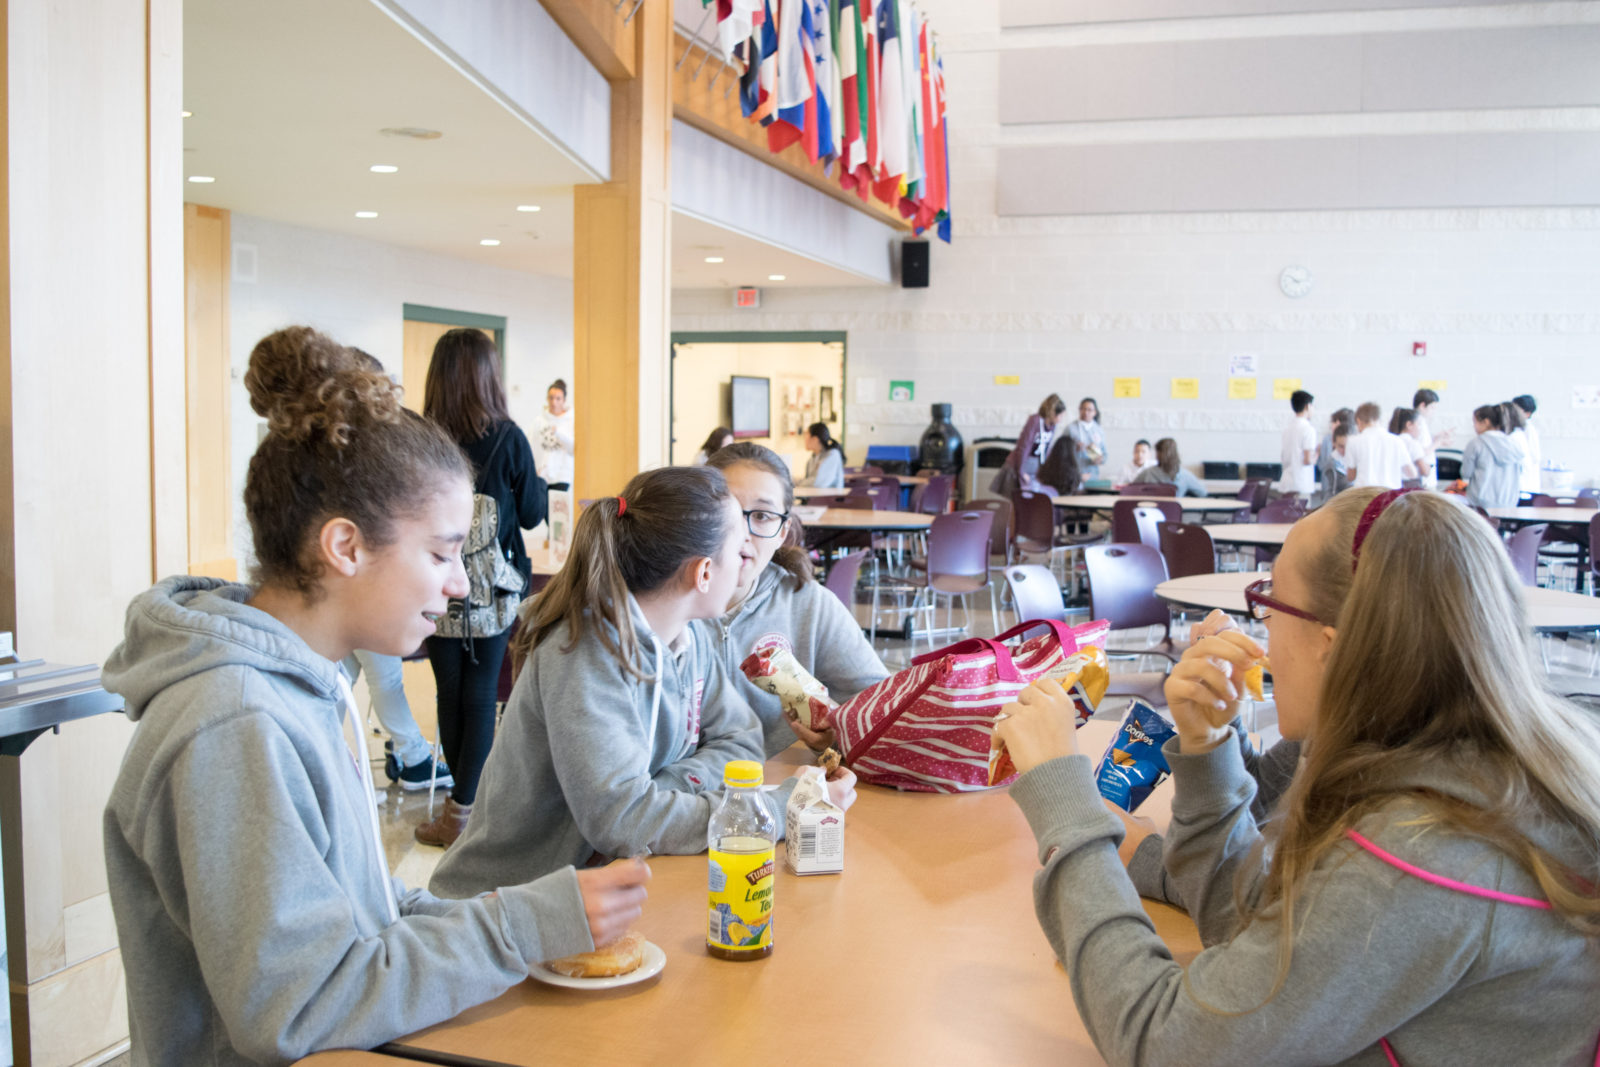 Seventh graders enjoy a small snack at 10 a.m. break.